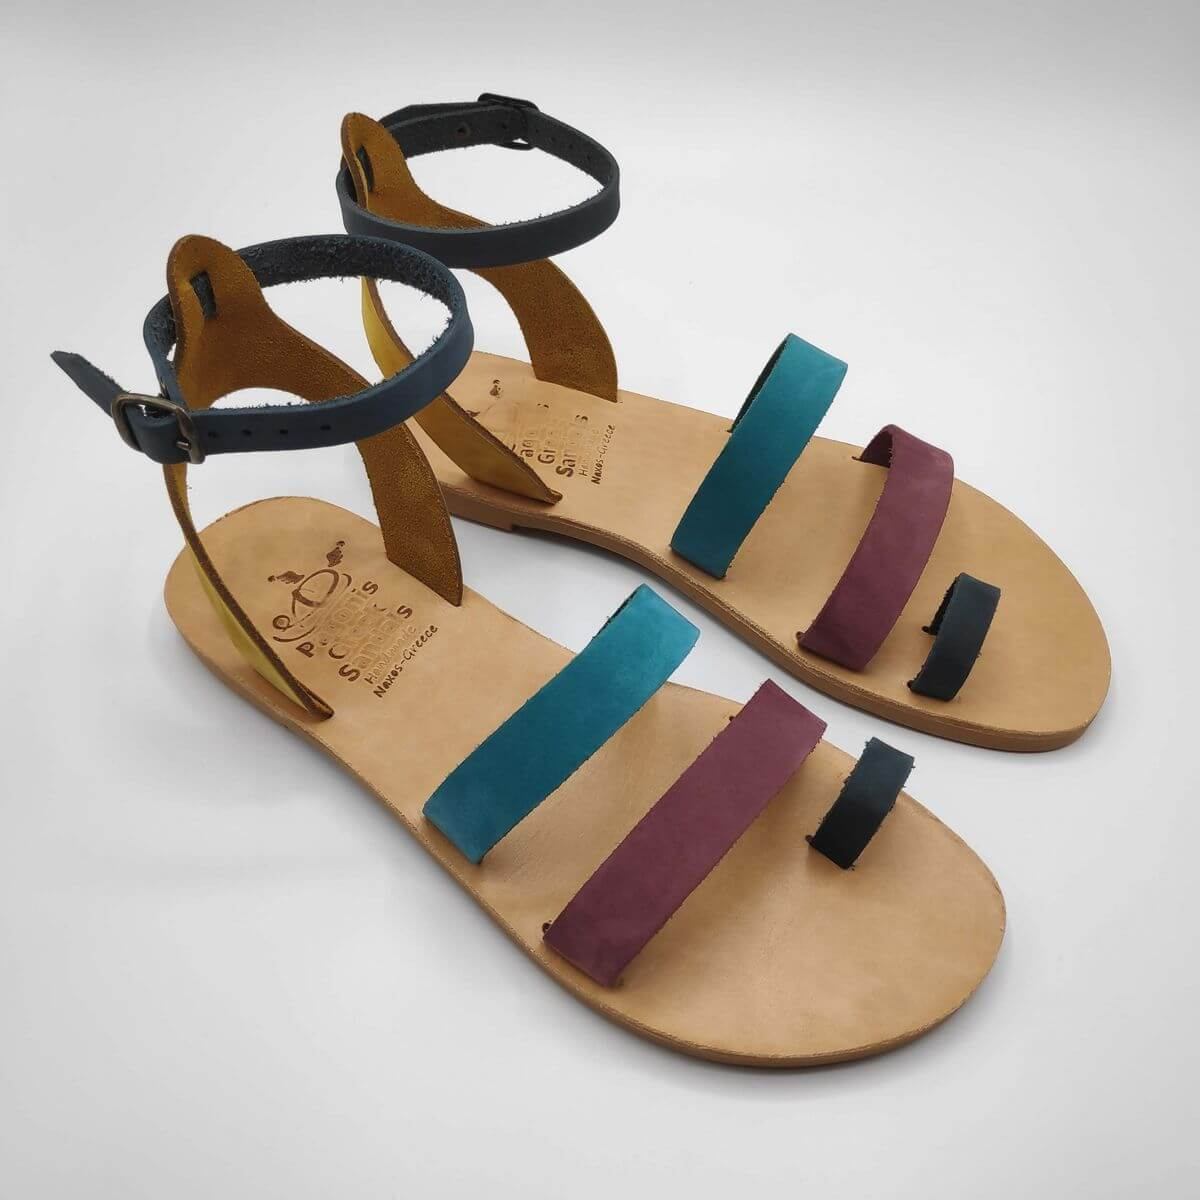 multi-colour nubuck leather dressy sandals with two straps, toe ring and high ankle strap, side view